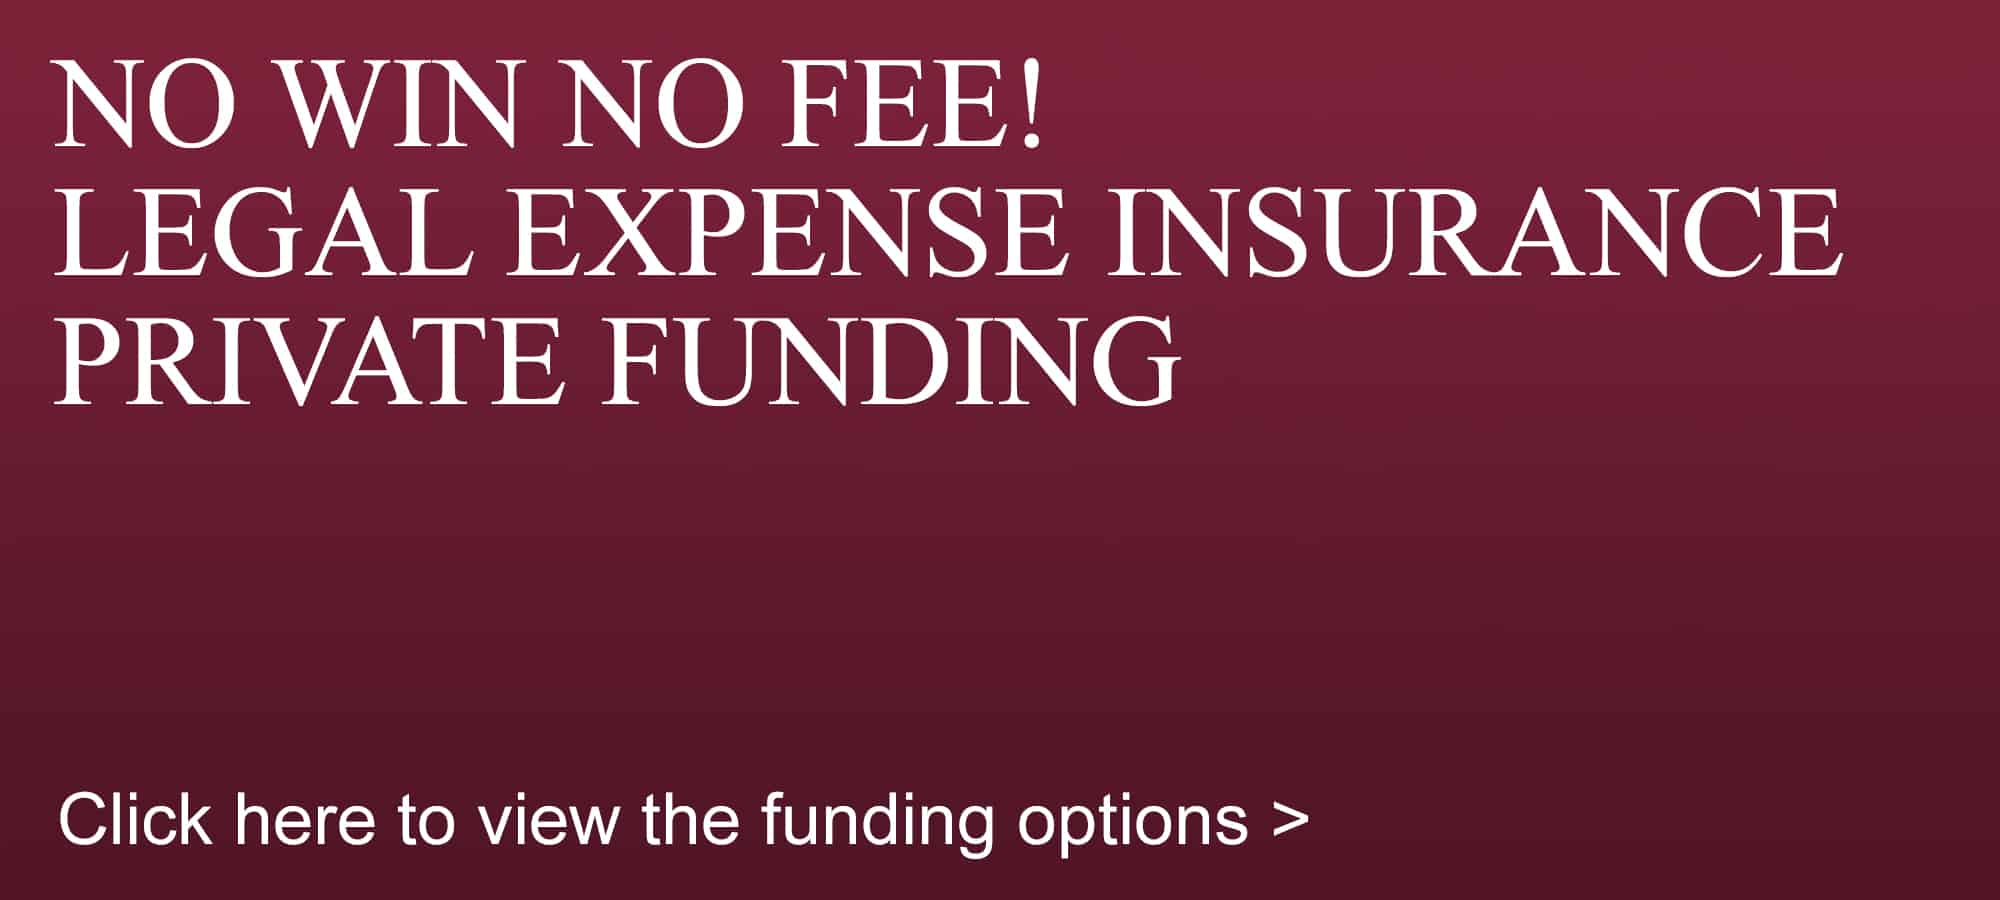 Astons No win no fee legal expense insurance private funding